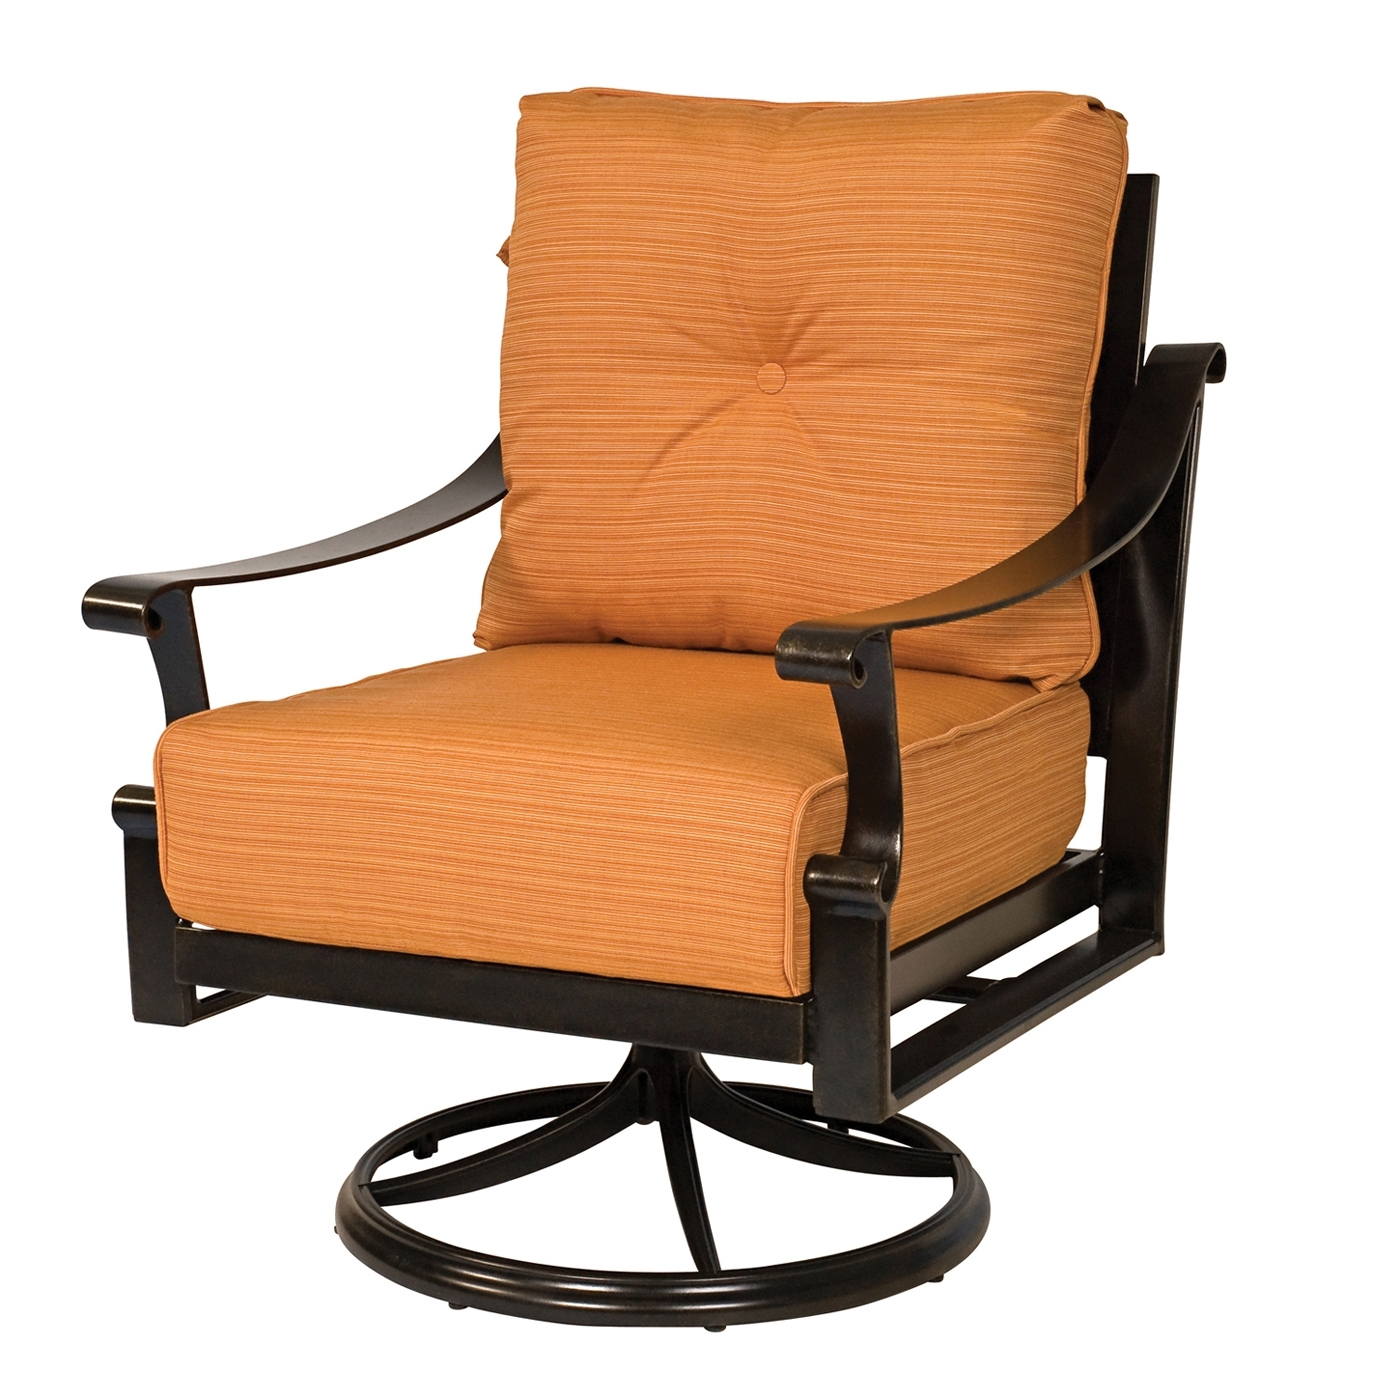 Inspirational Swivel Rocker Patio Chair Dmsgb Mauriciohm Chairs Sale For Trendy Patio Rocking Swivel Chairs (View 12 of 20)